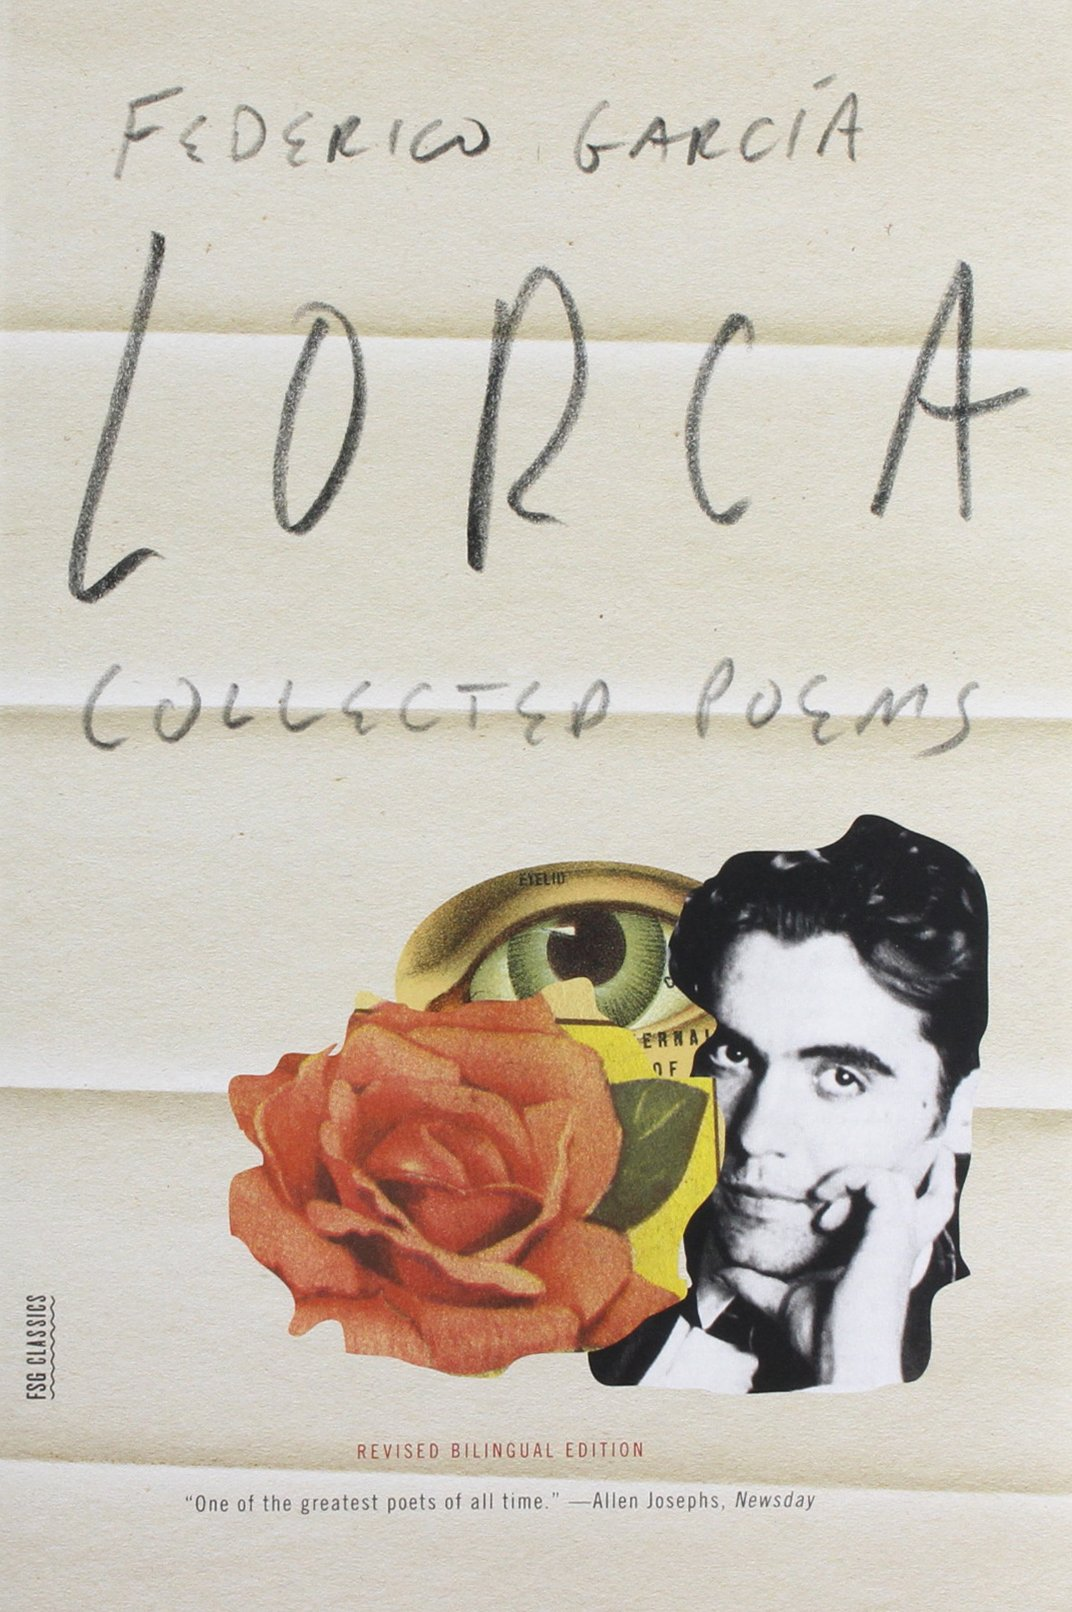 The Collected Poems: A Bilingual Edition (Revised): Federico García Lorca,  Christopher Maurer: 9780374526917: Amazon.com: Books